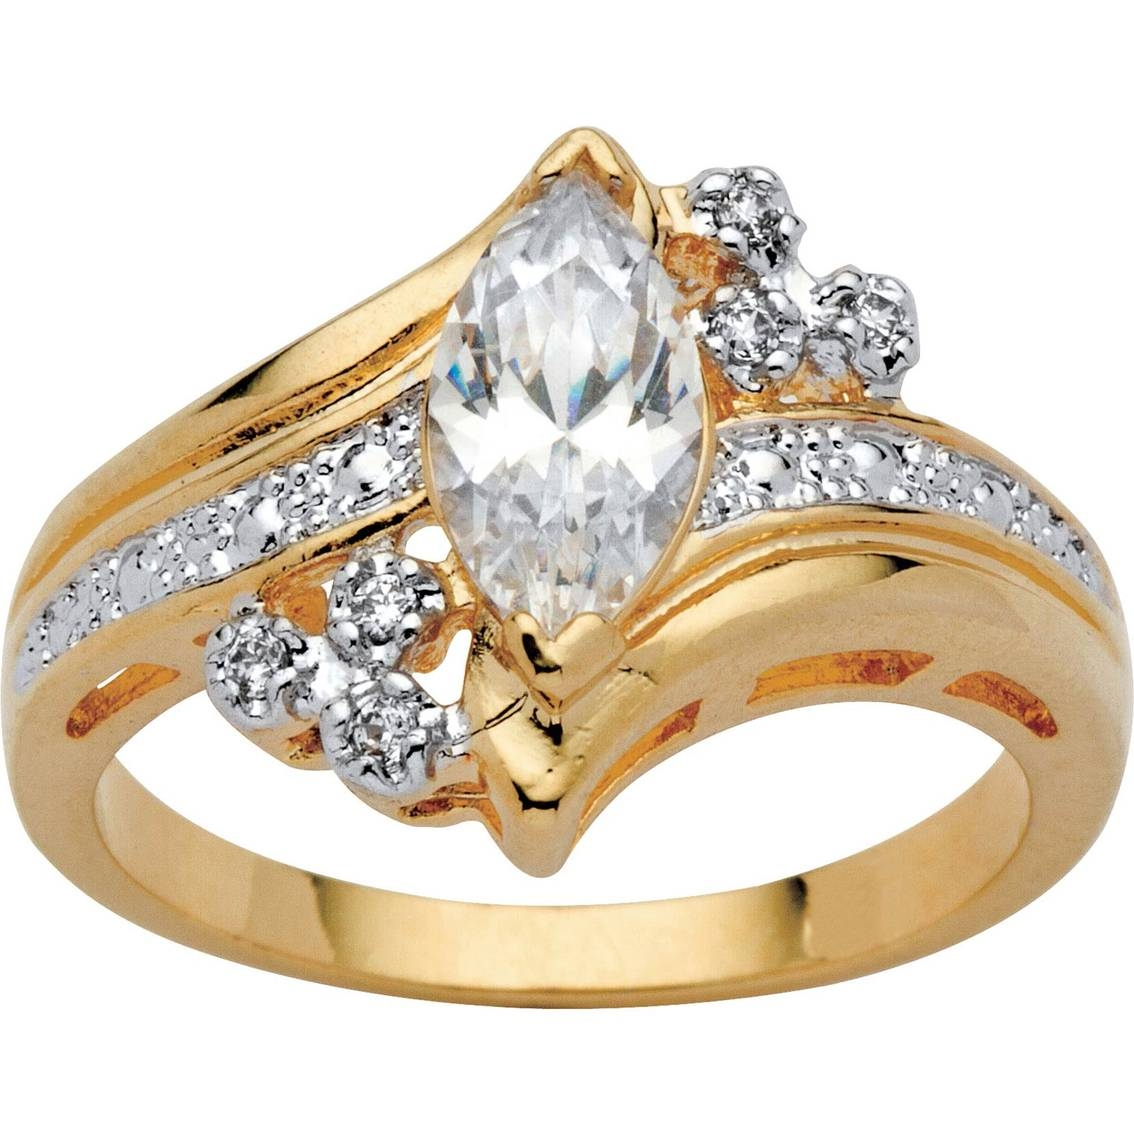 Palmbeach 14K Yellow Gold Plated Marquise Cut Cubic Zirconia For Most Recently Released Cubic Zirconia Anniversary Rings (View 18 of 25)